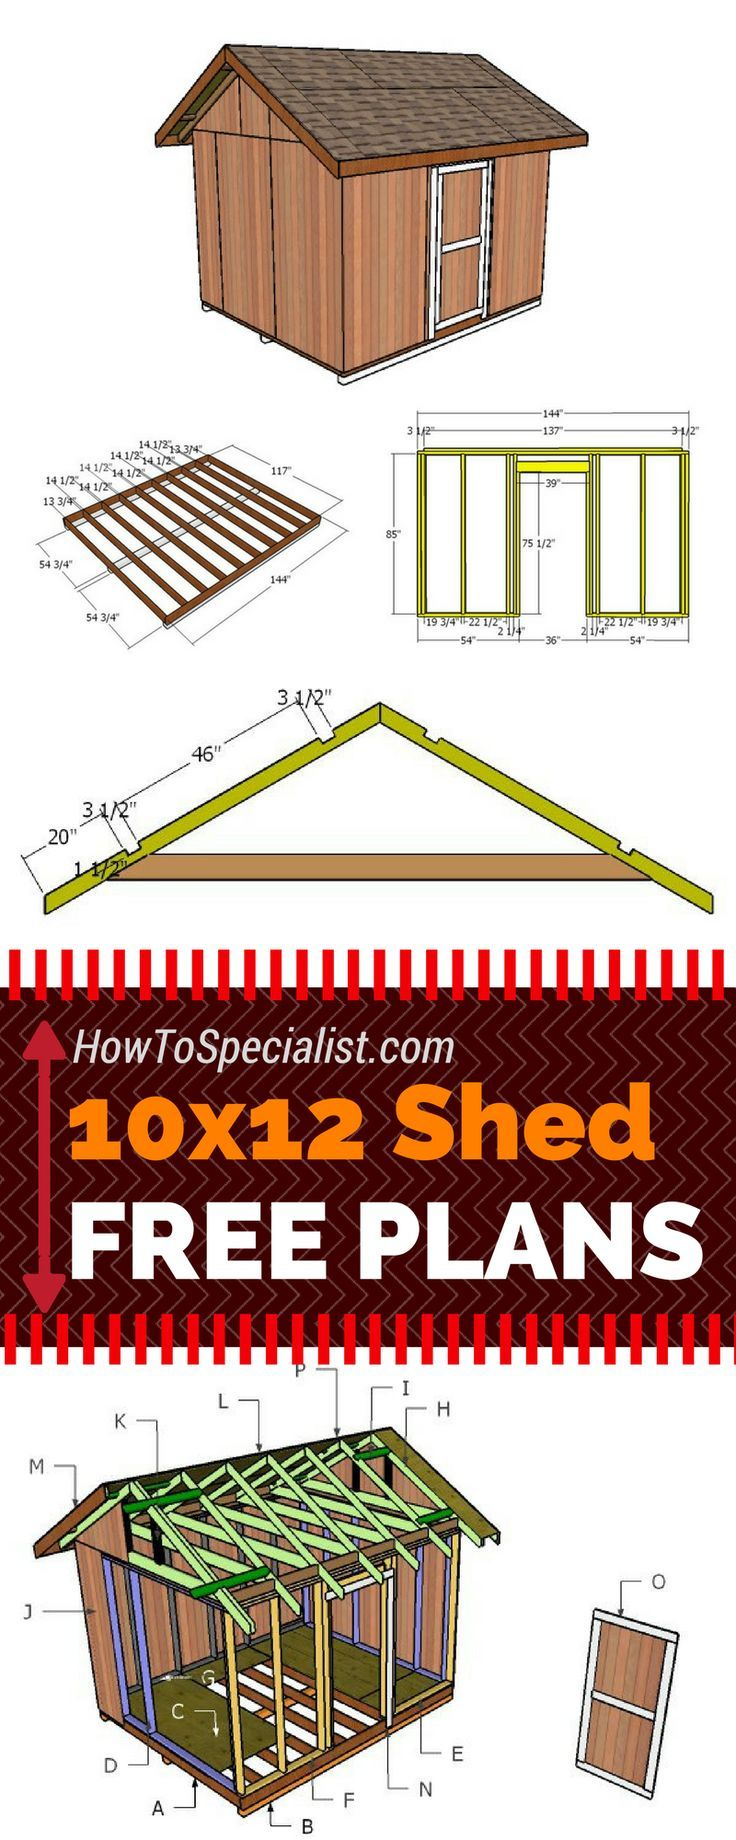 10x12 Shed Plans Free Howtospecialist How To Build Step By Step Diy Plans 10x12 Shed Plans Diy Storage Shed Plans Diy Storage Shed